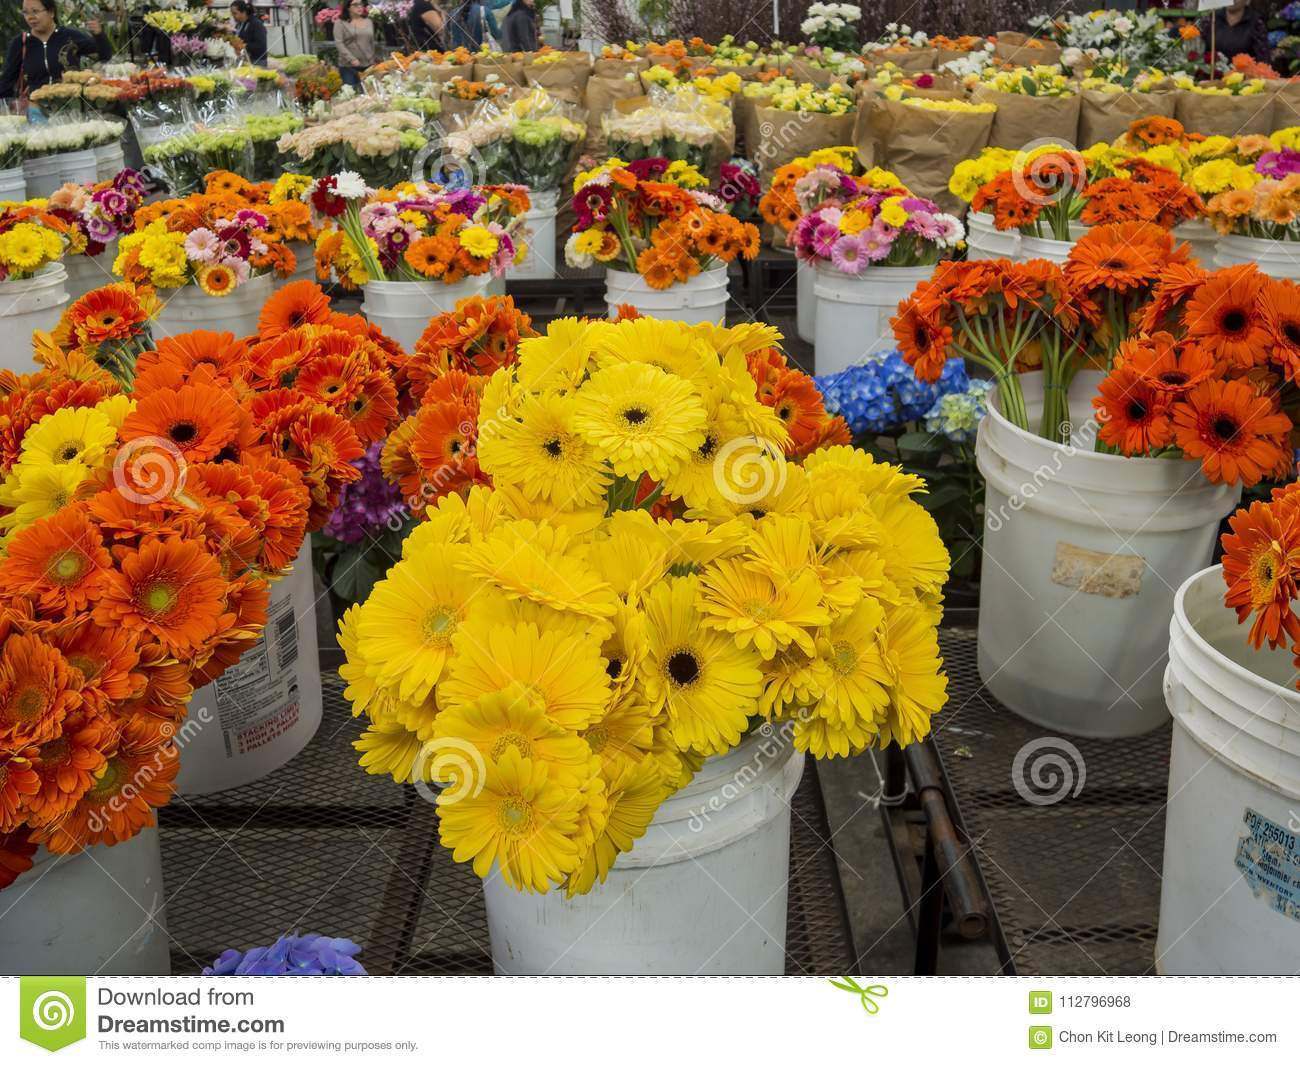 Many different kinds of flowering selling